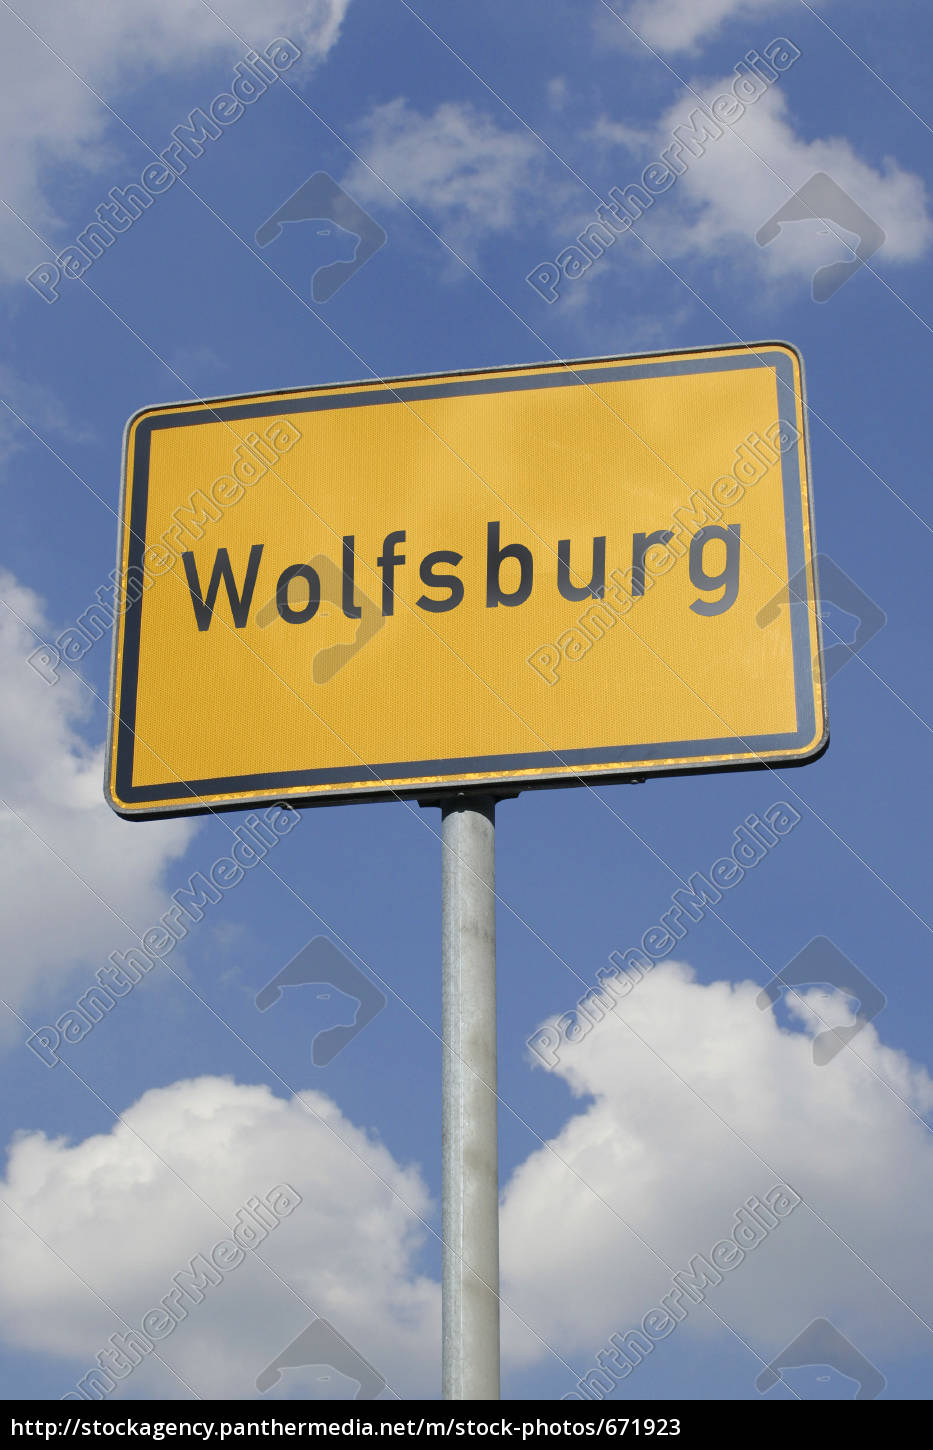 wolfsburg, sign - 671923